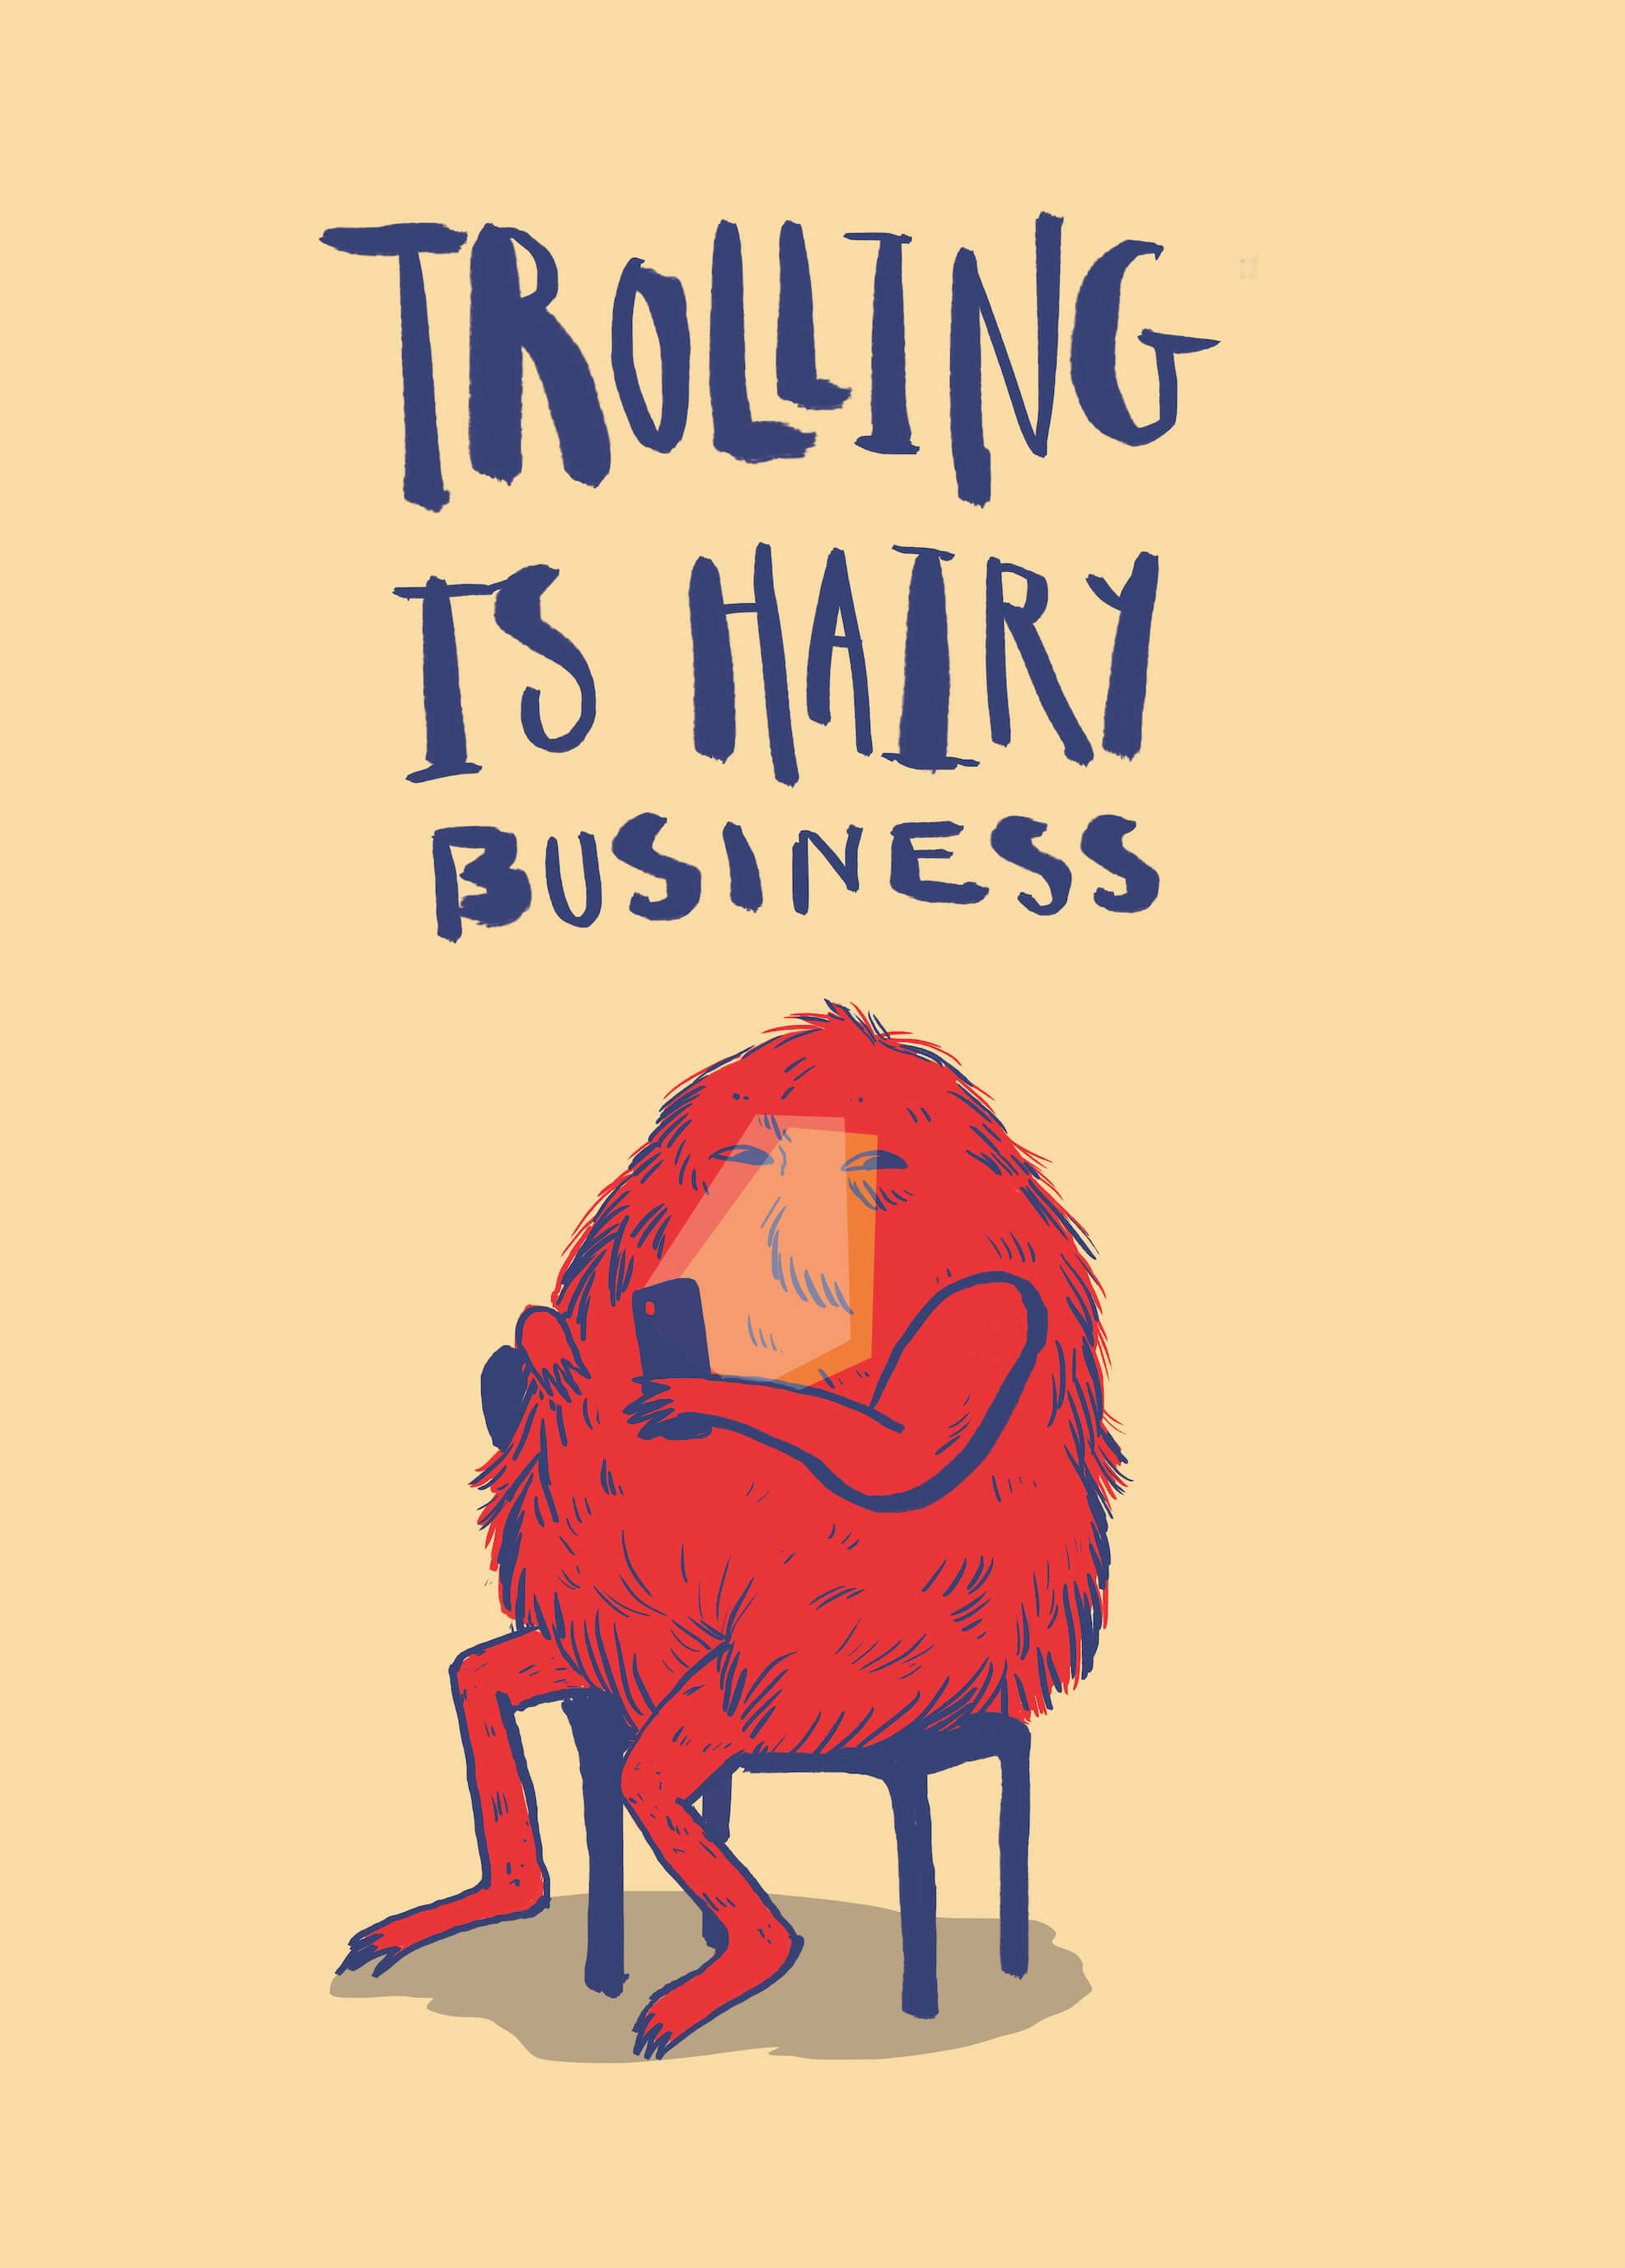 Trolling Is Hairy Business main image